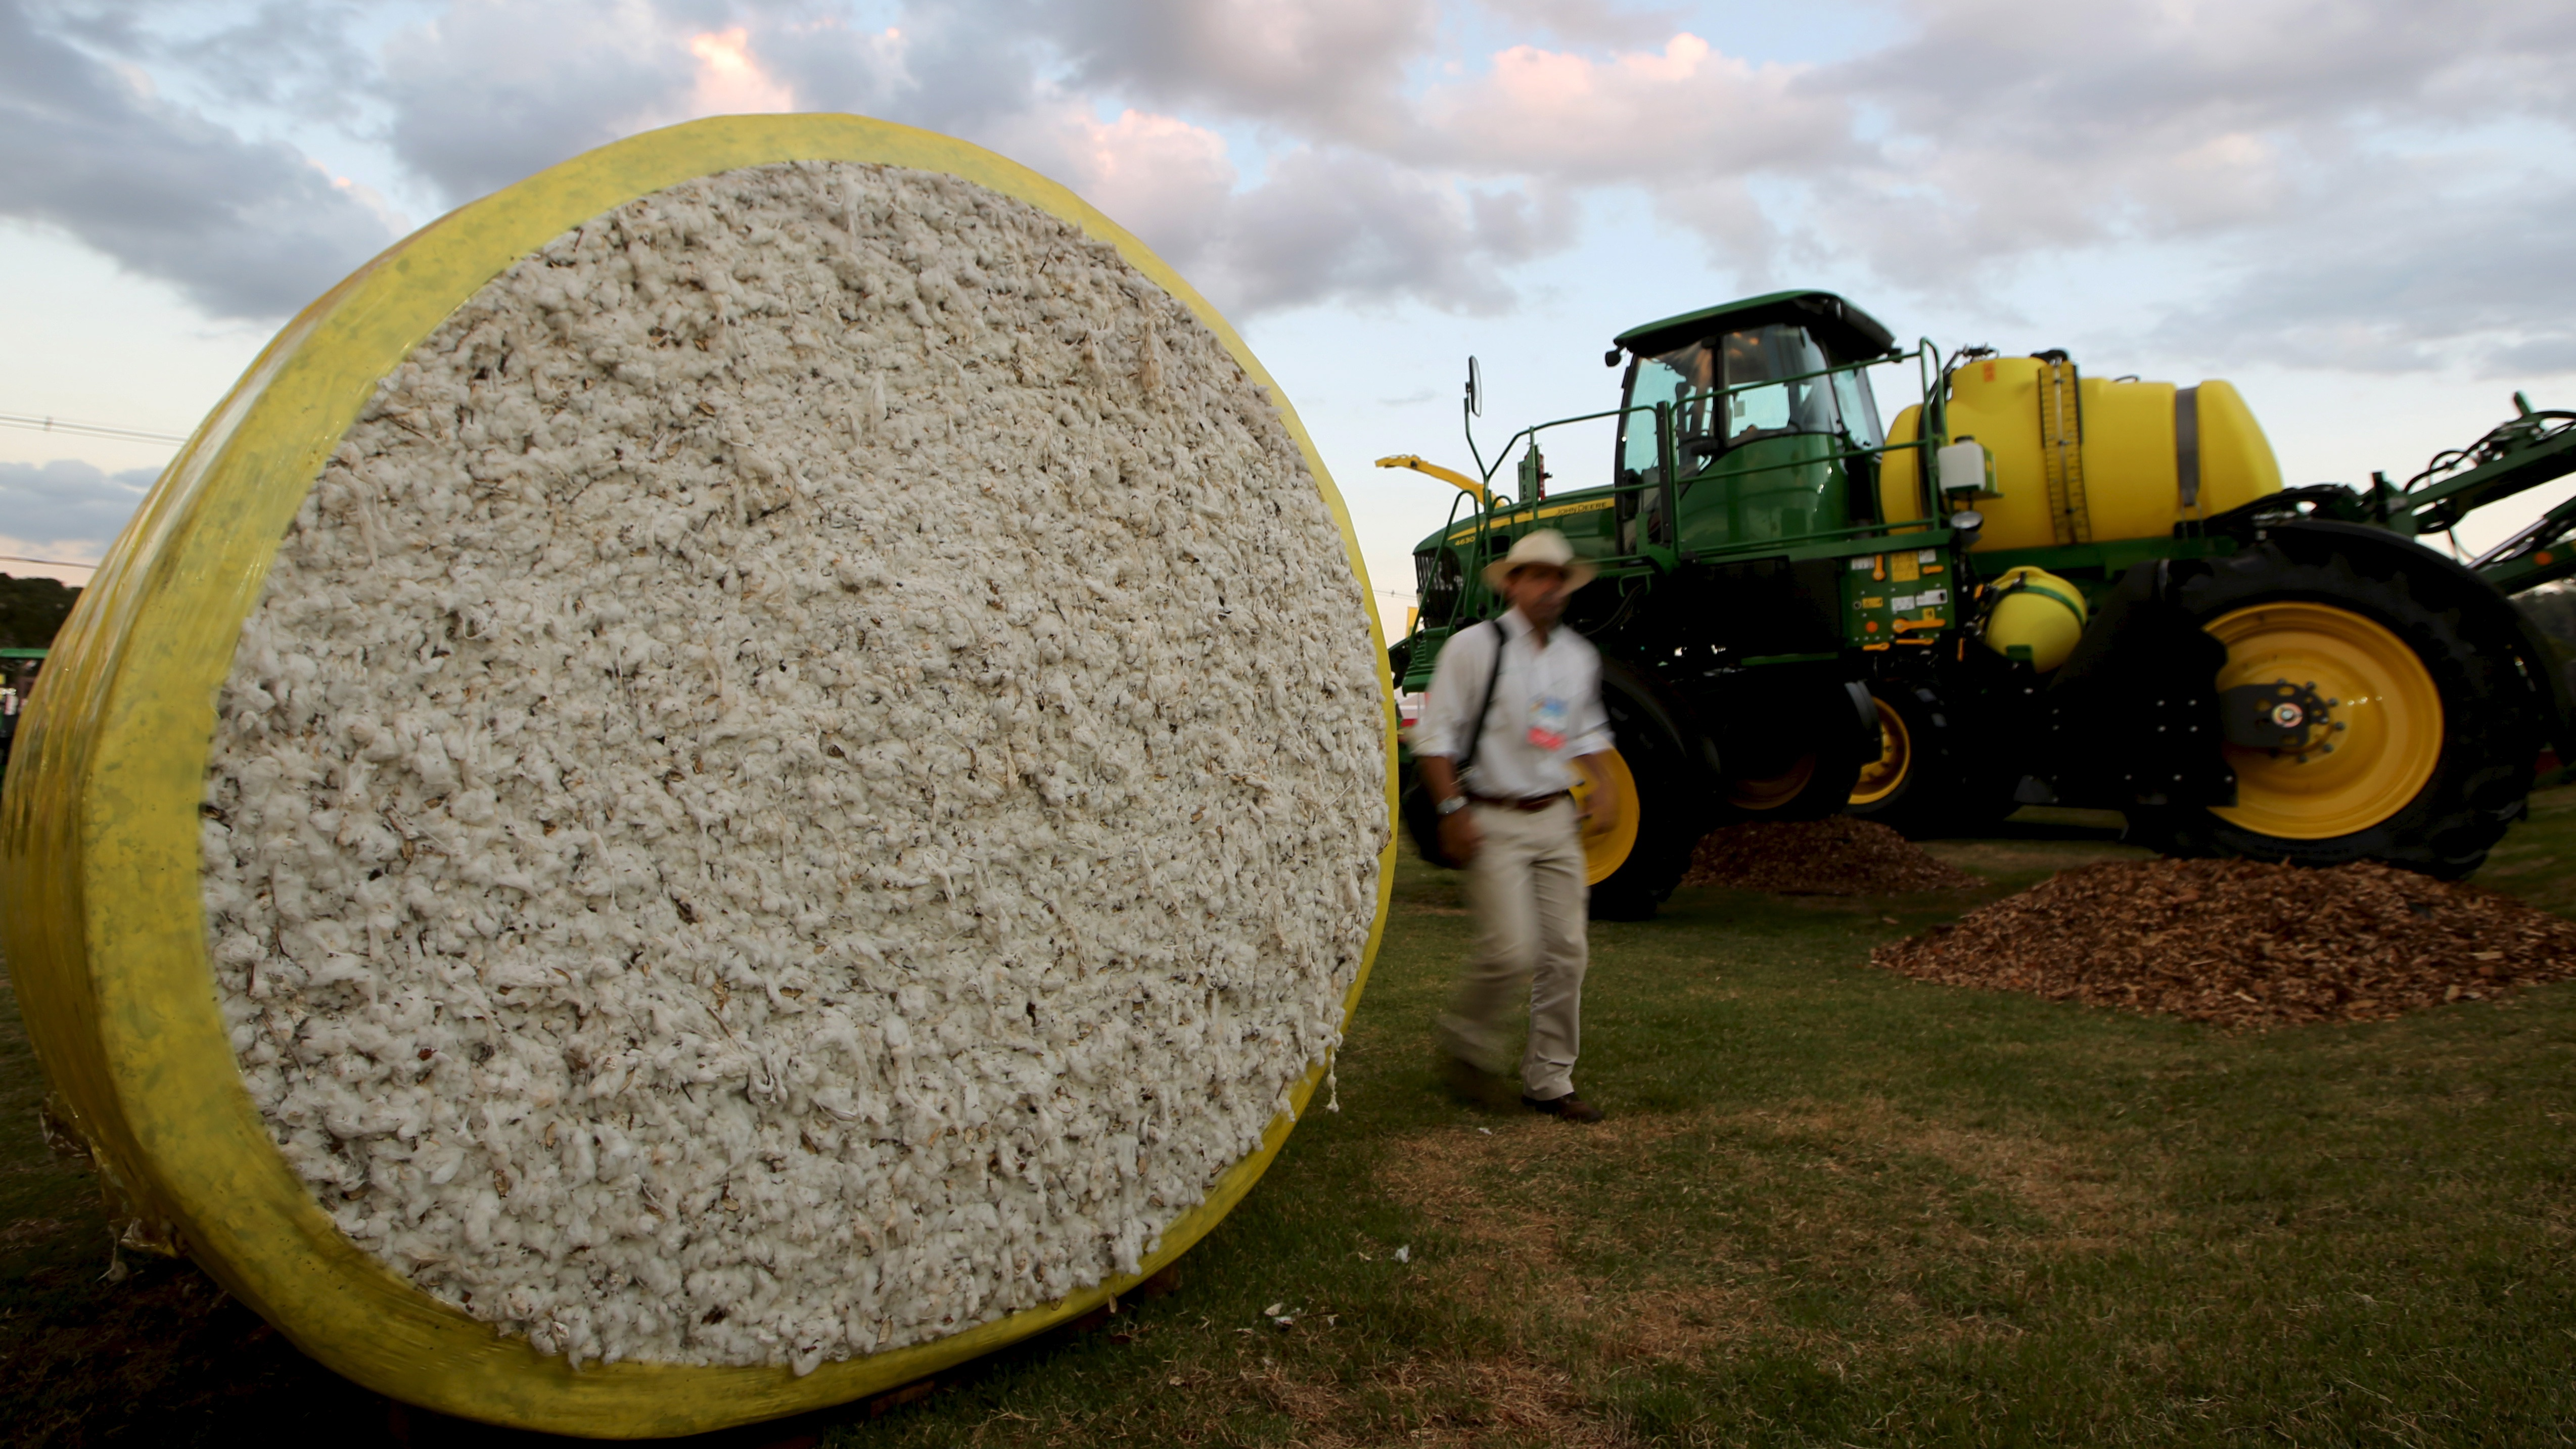 A man walks past packed cotton during Agrishow, the largest fair of agricultural machinery business in Latin America, in Ribeirao Preto, Brazil April 27, 2015.